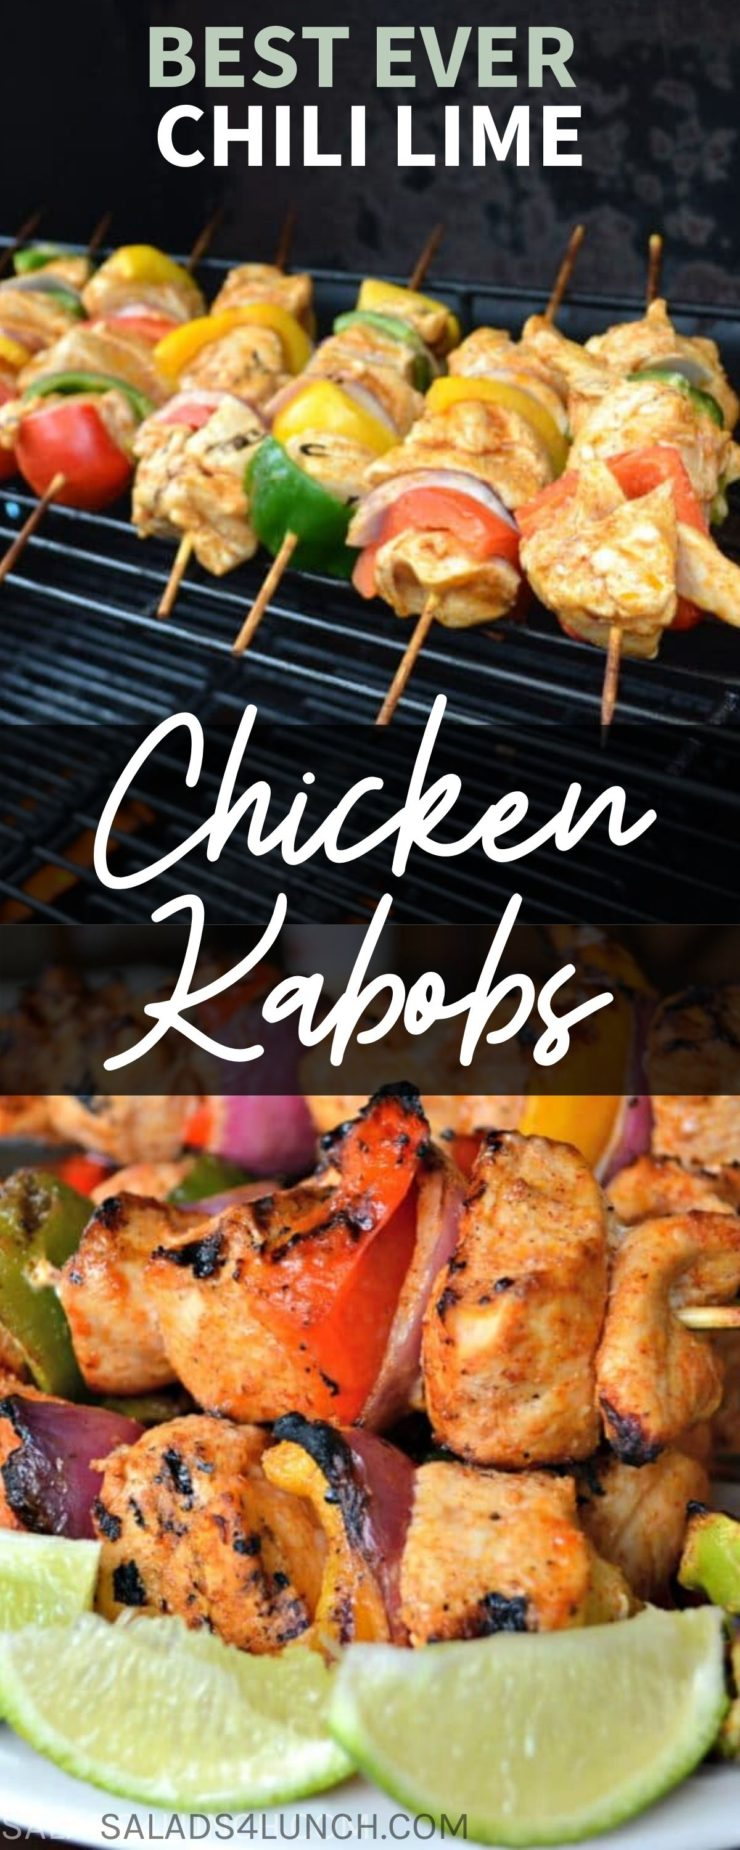 "Collage showing chicken and veggie kabobs on a bbq grill with text overlay ""best ever chili lime chicken kabobs""."